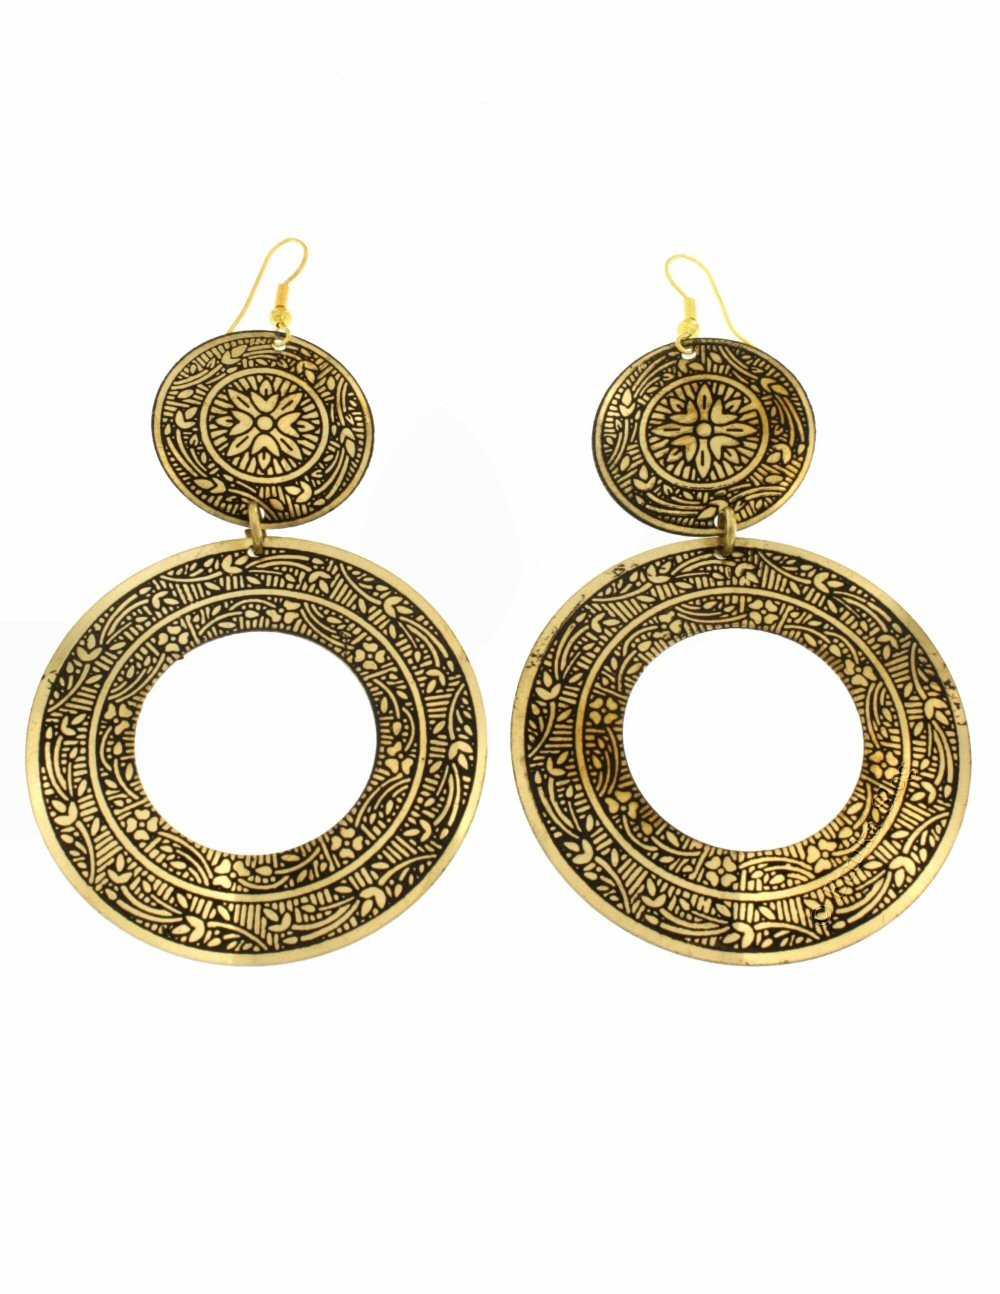 EARRINGS - METAL MB-OROT07-3 - Oriente Import S.r.l.